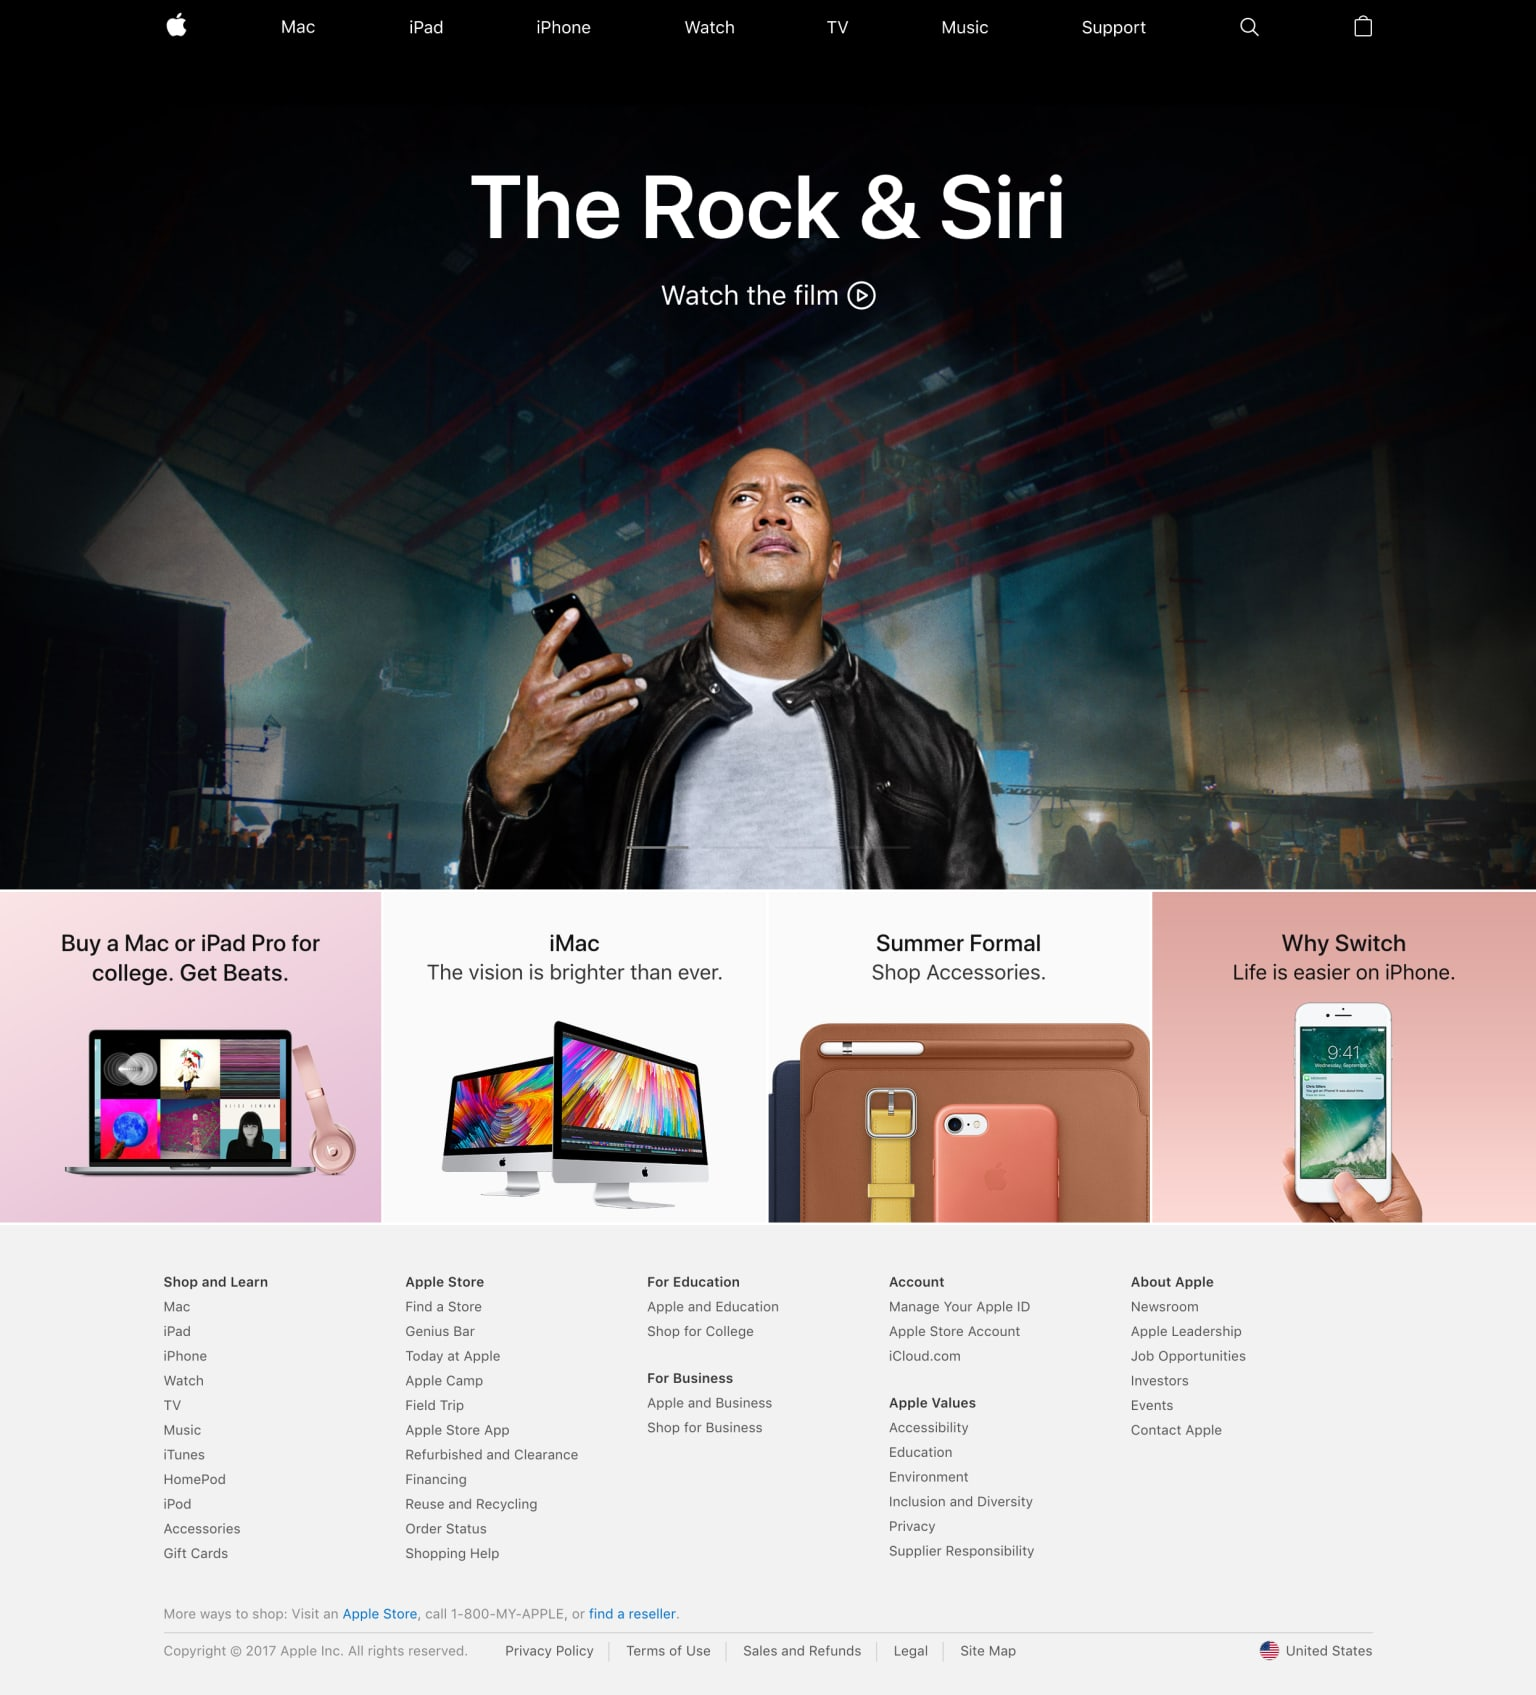 The Rock & Siri